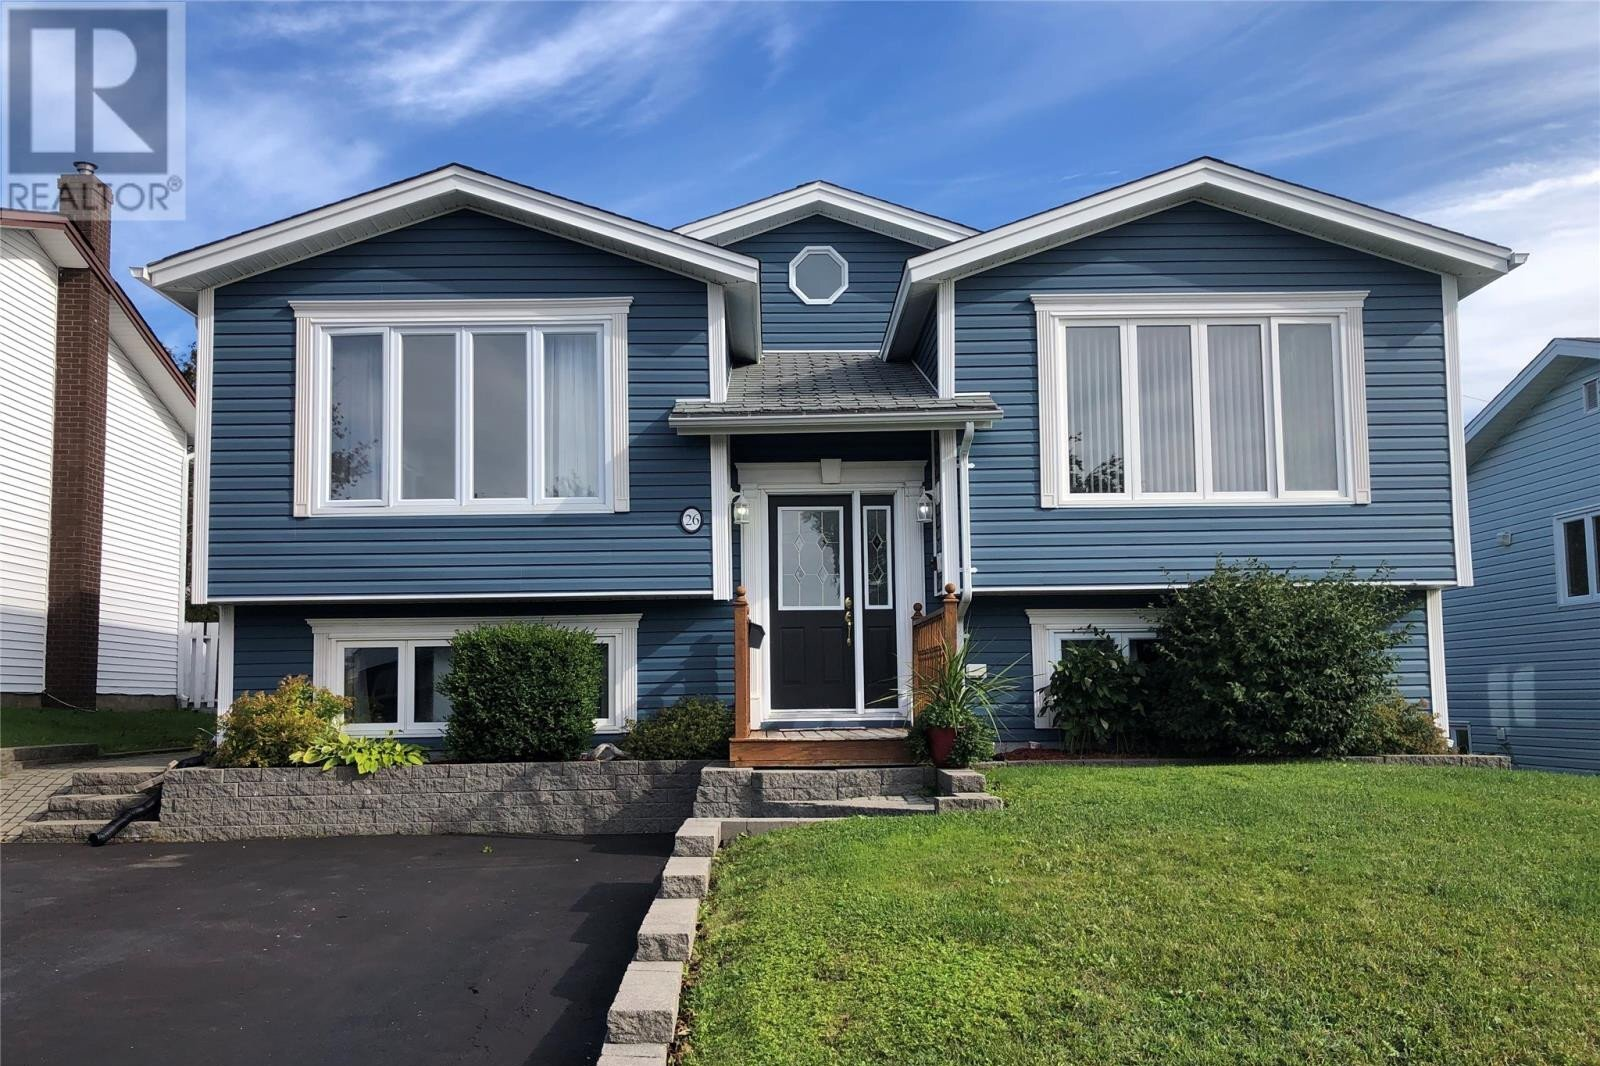 House for sale at 26 Birmingham St St. John's Newfoundland - MLS: 1221723